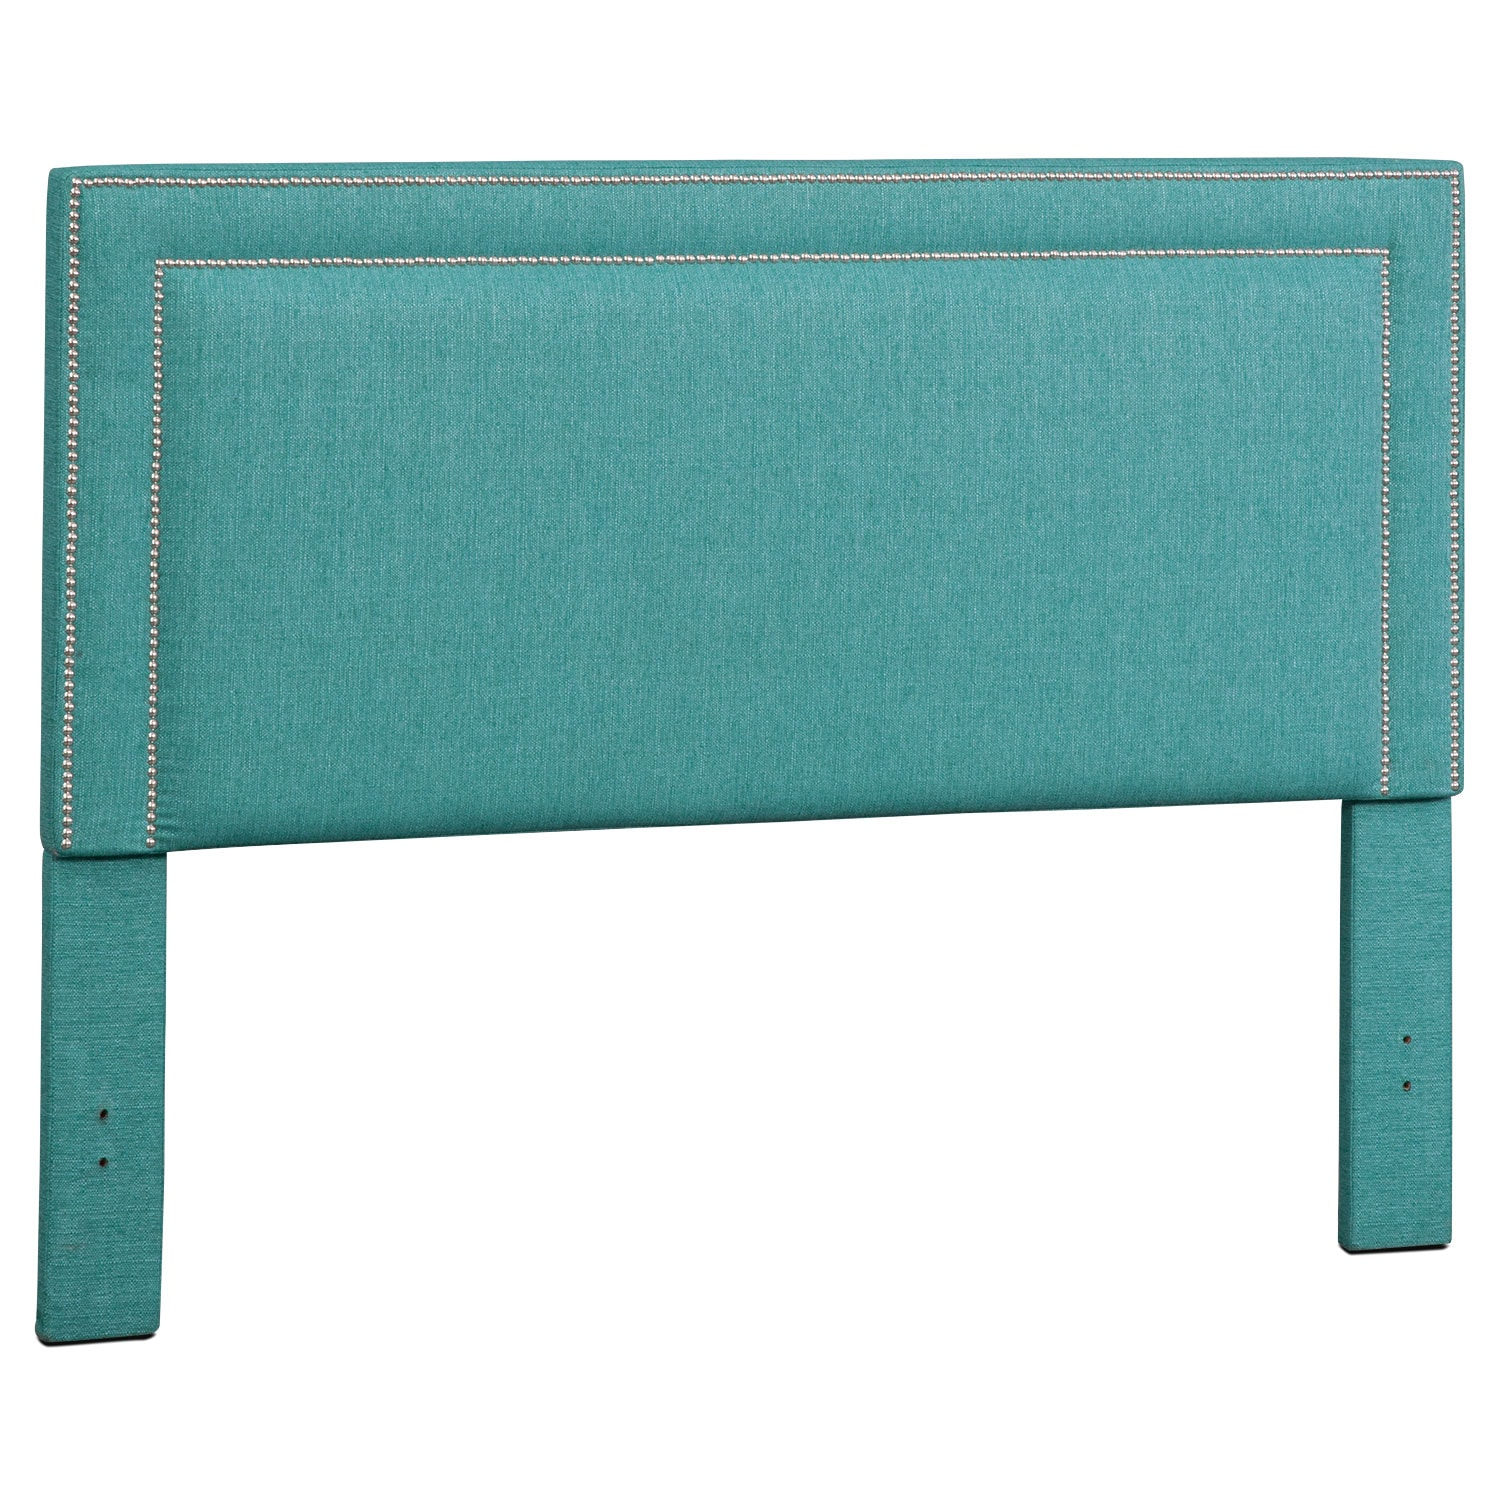 Natalie King Upholstered Headboard - Teal